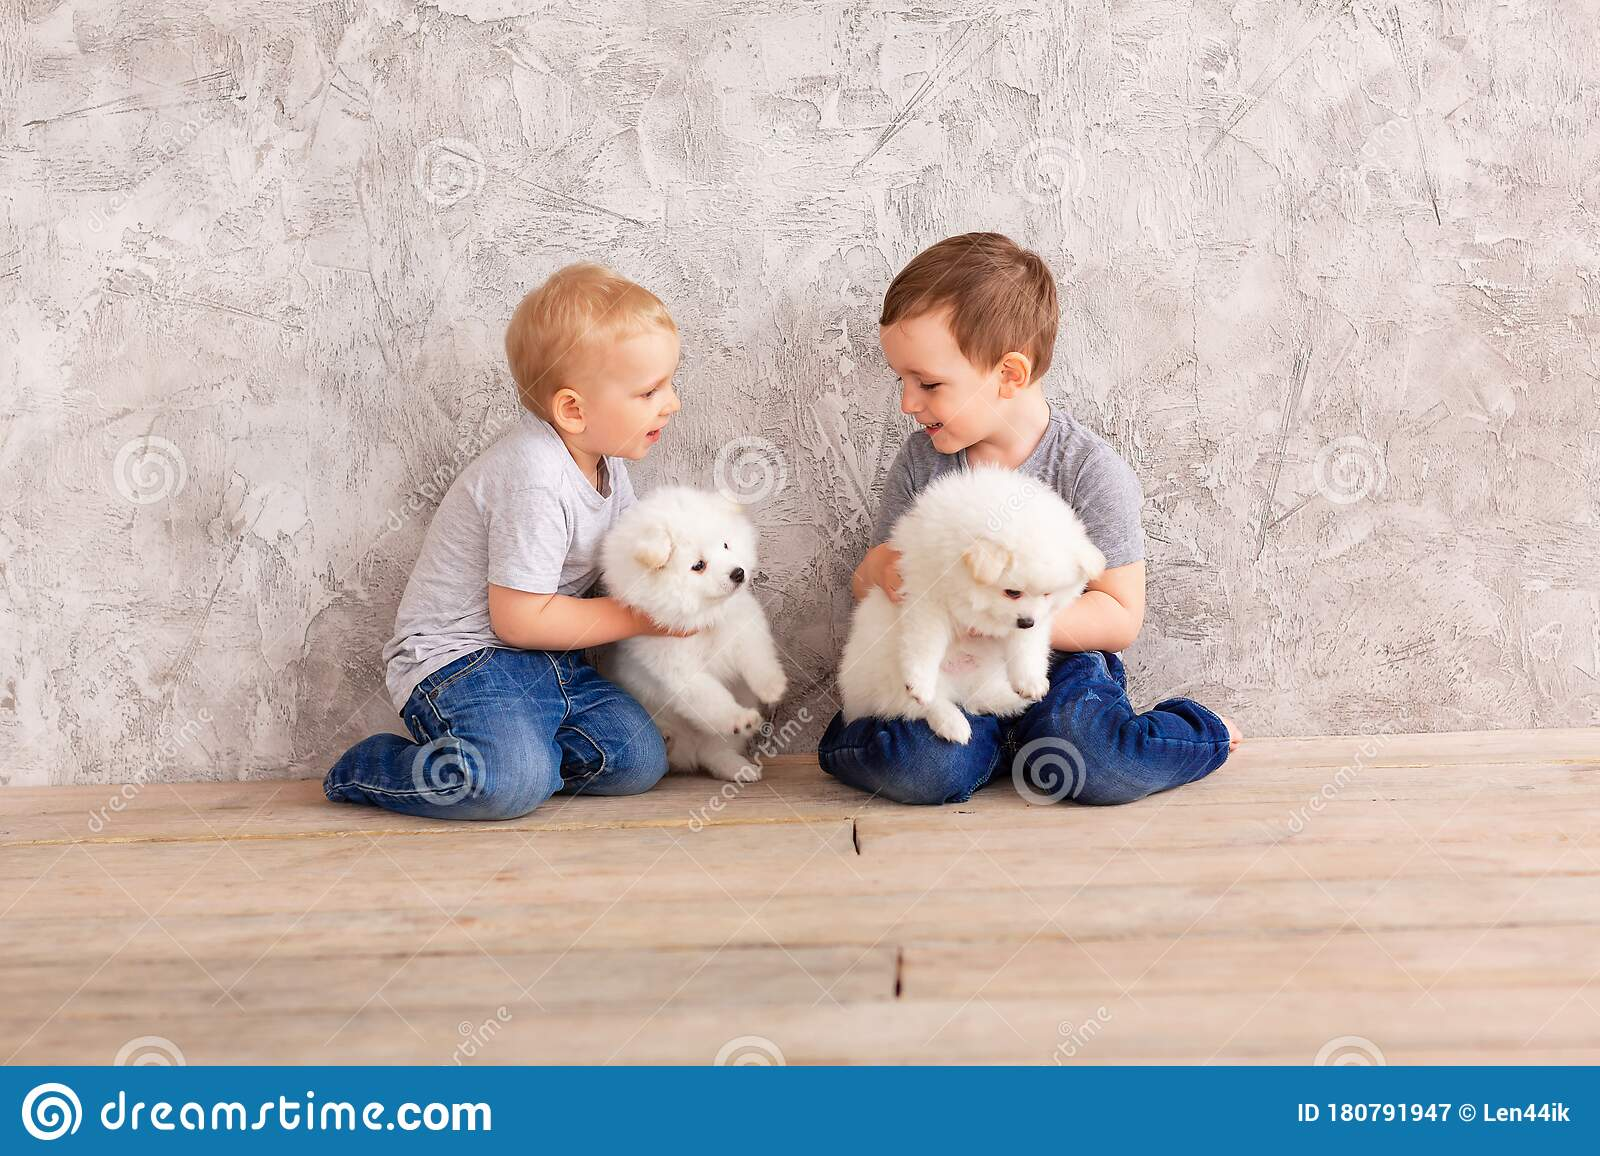 Two Cute Little Baby Boys Playing With Little White Puppies Stock Image Image Of Happy Baby 180791947